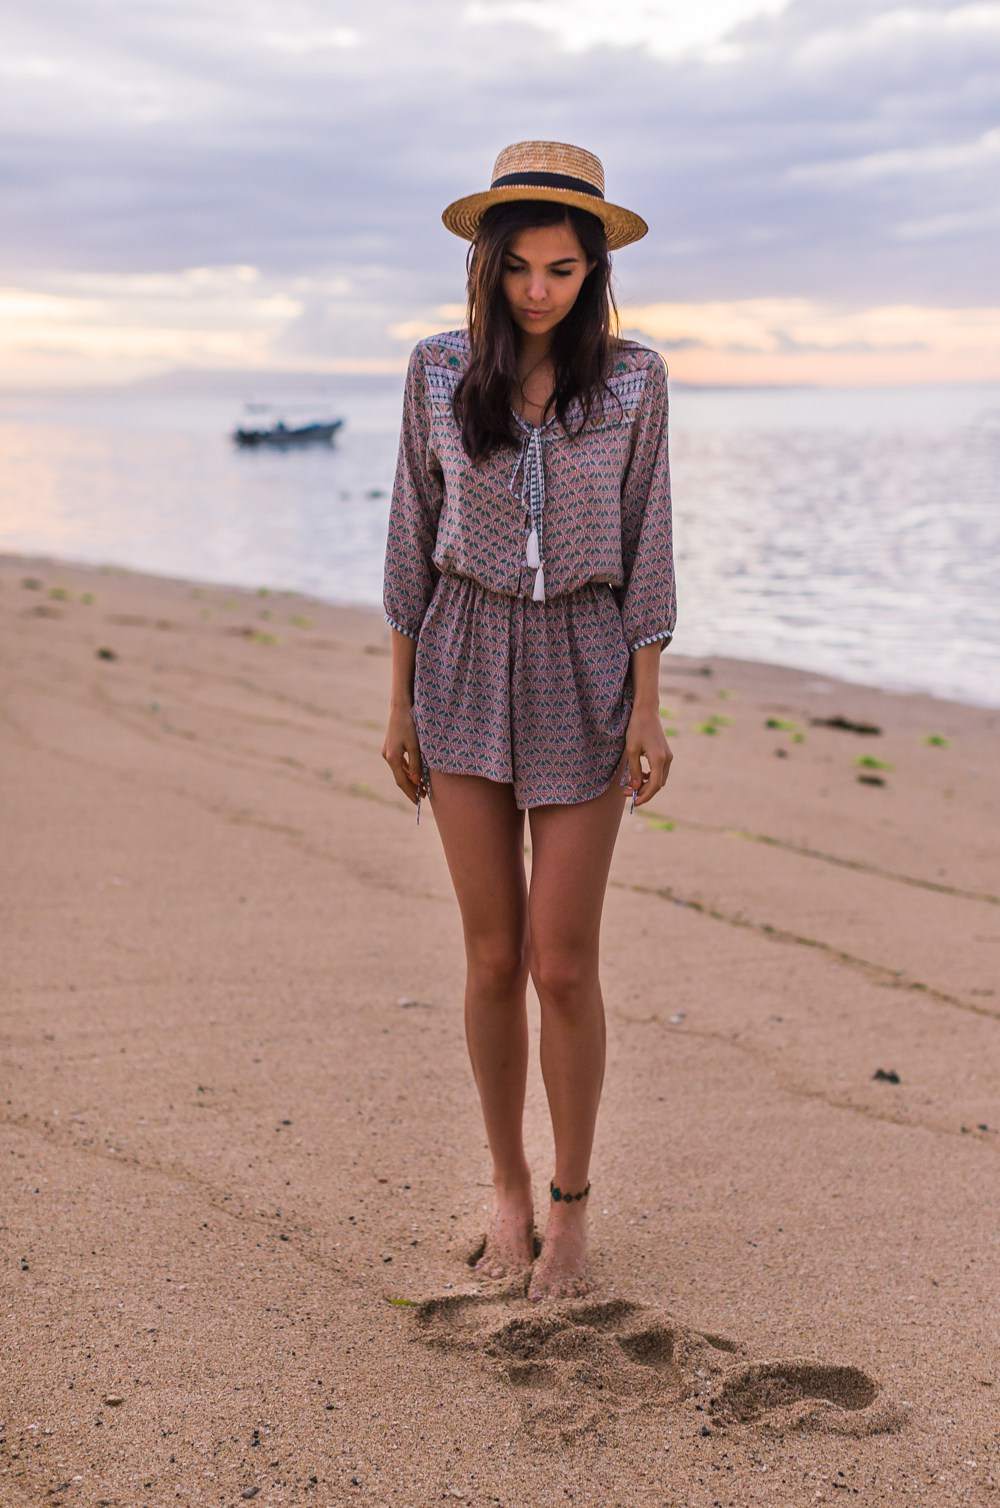 3d762bf382529 For a cute beach outfit idea, try wearing a loose and light patterned  playsuit with